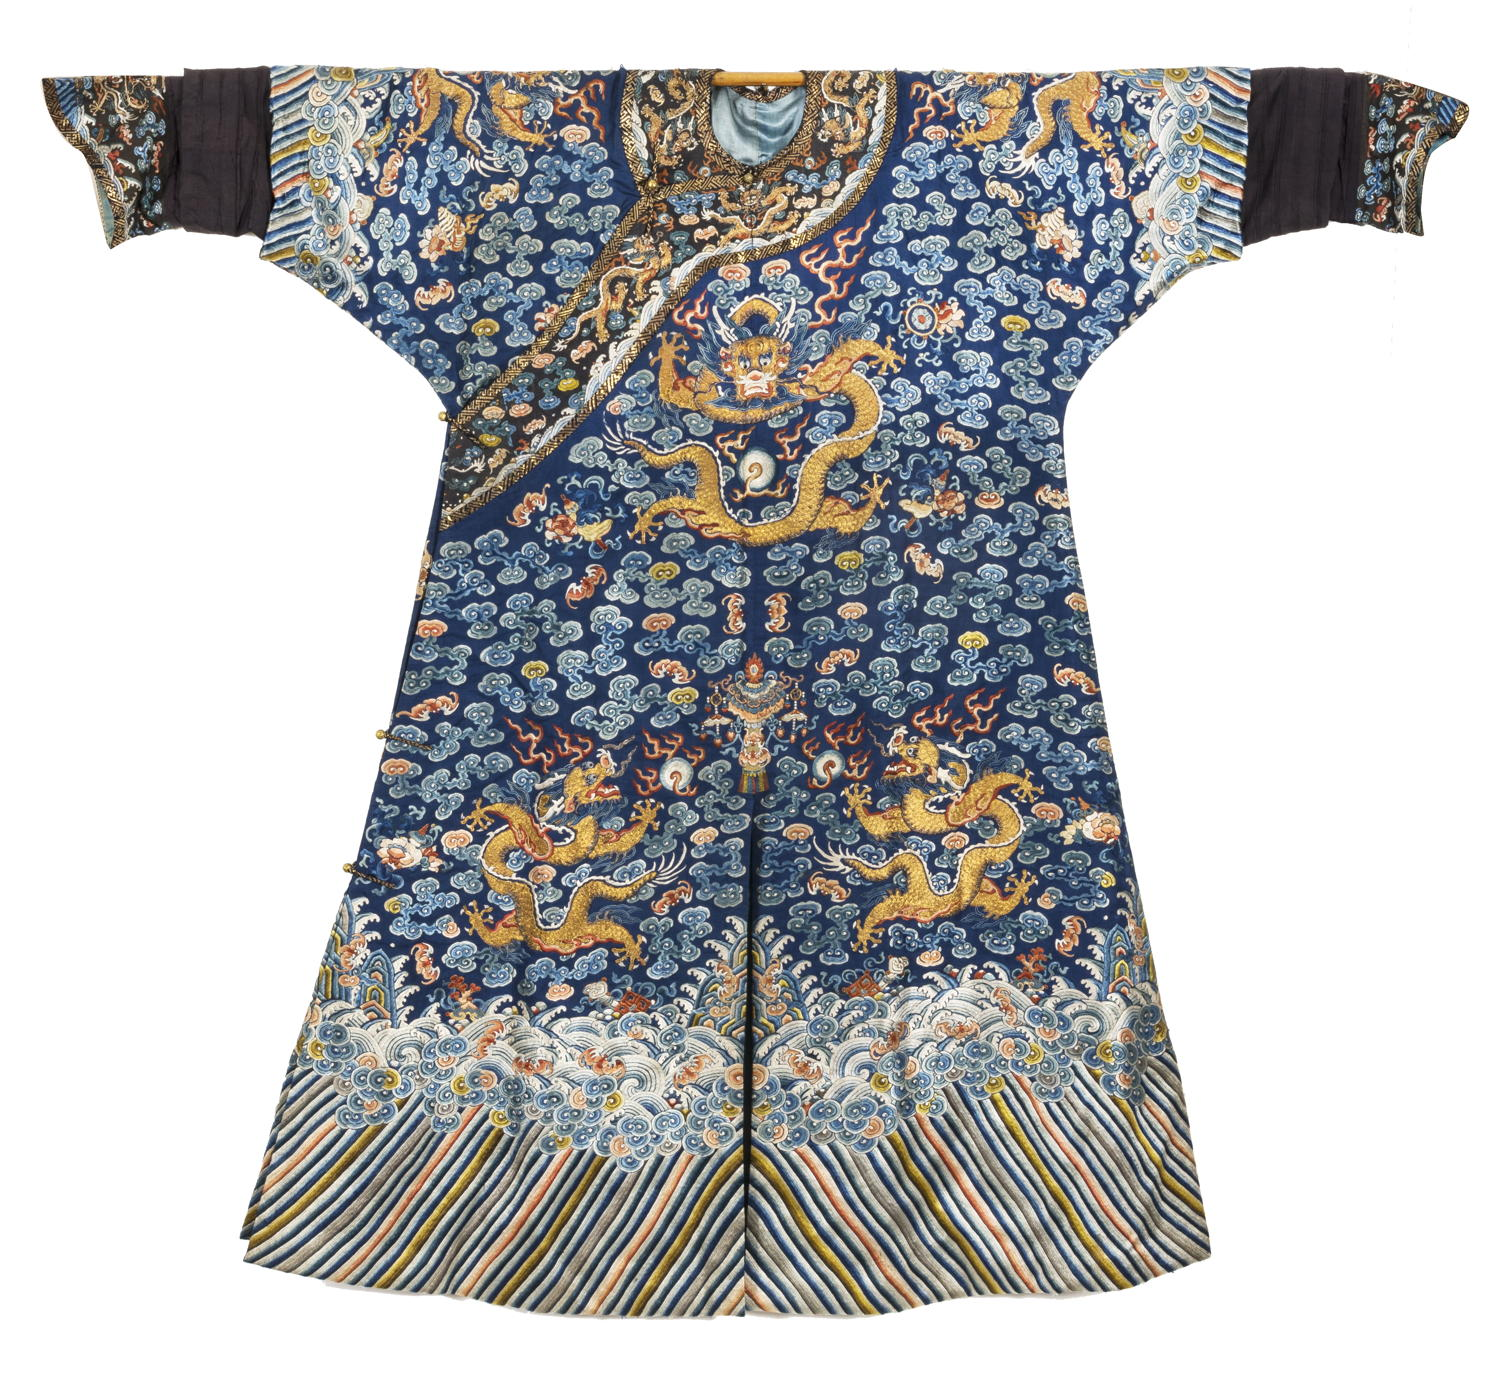 81b7783f596a3 CHINESE BLUE SILK ROBE EMBROIDERED WITH IMPERIAL DRAGON MOTIFS, TOGETHER  WITH A CHINESE OFFICIAL'S HAT AND FOUR OTHER ARTICLES OF CLOTHING.